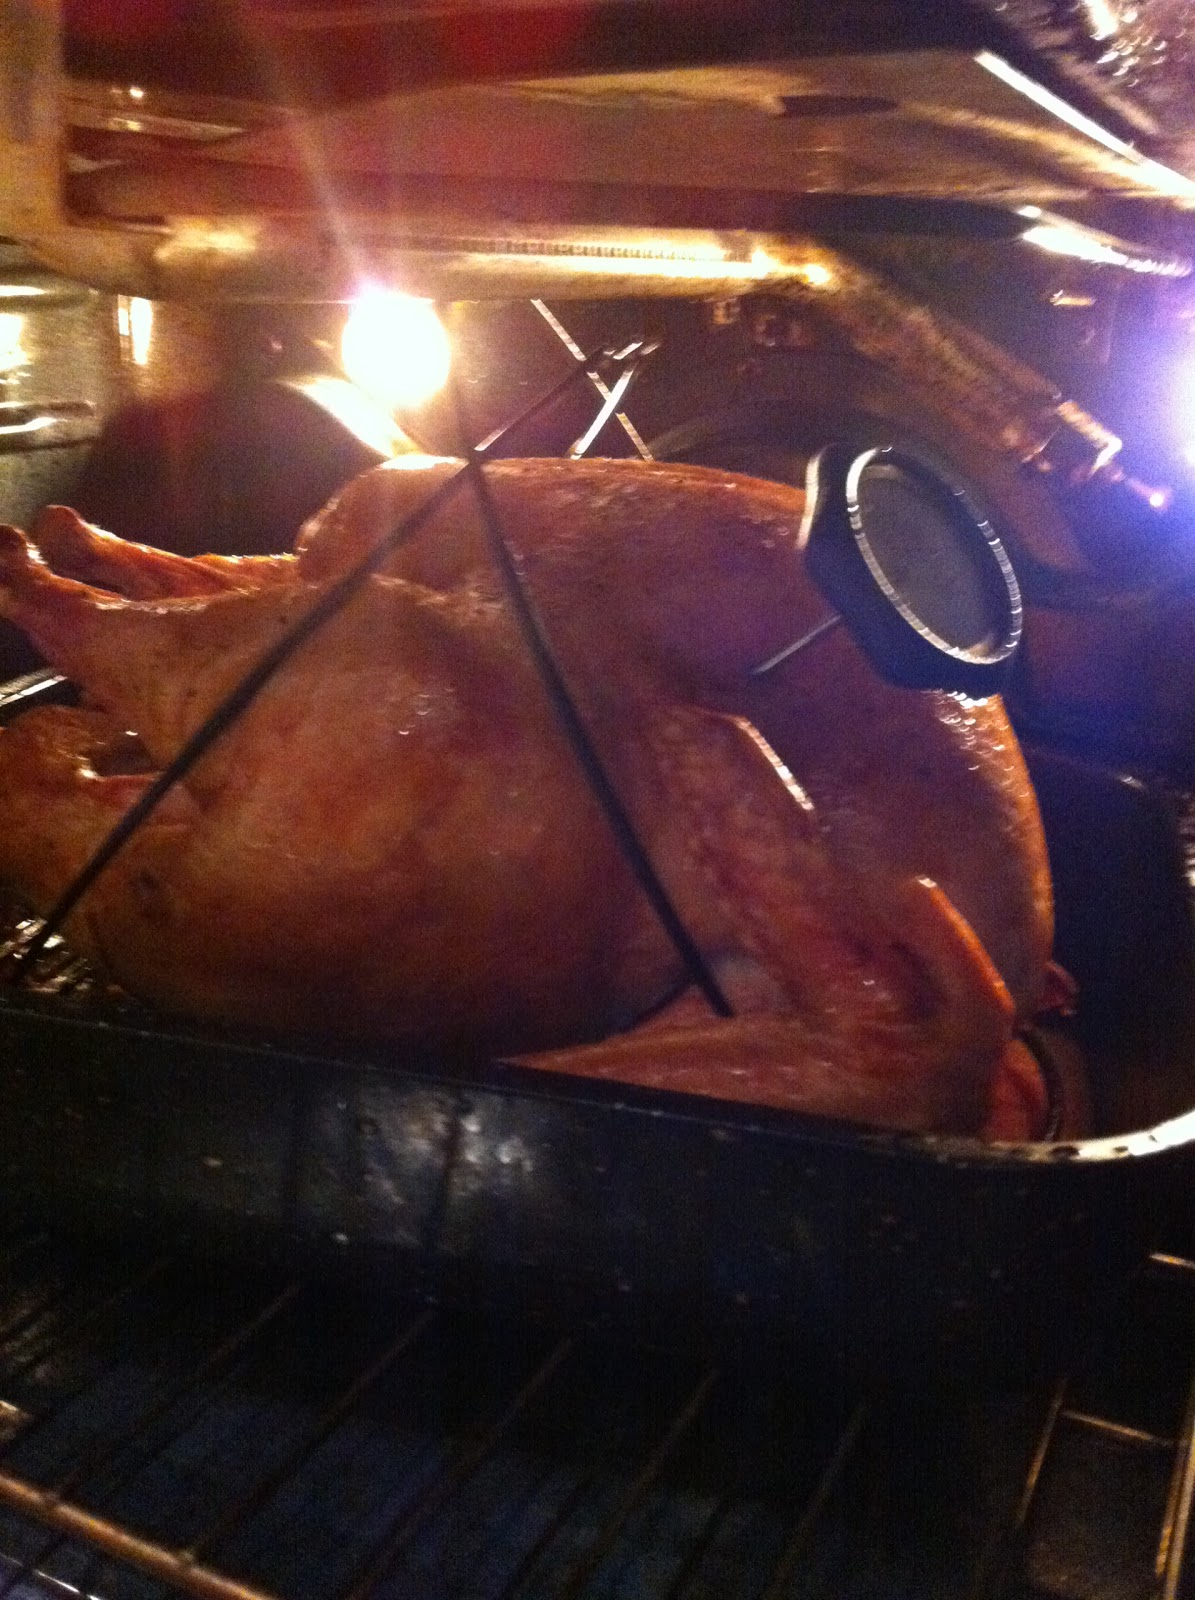 how to long to cook a 12 lb stuffed turkey